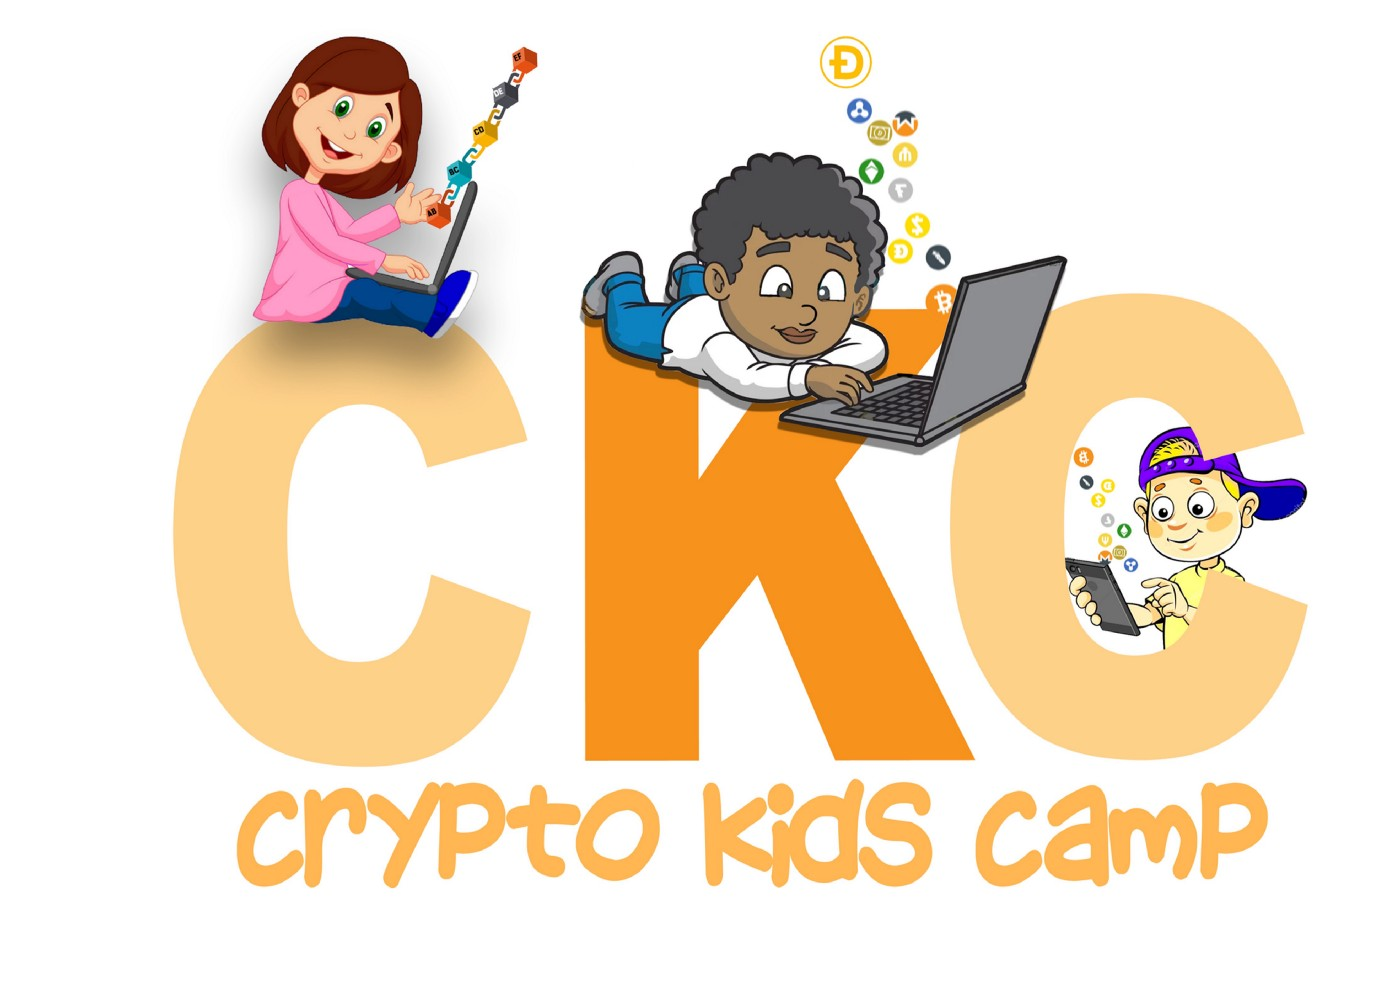 Crypto Kids Camp logo